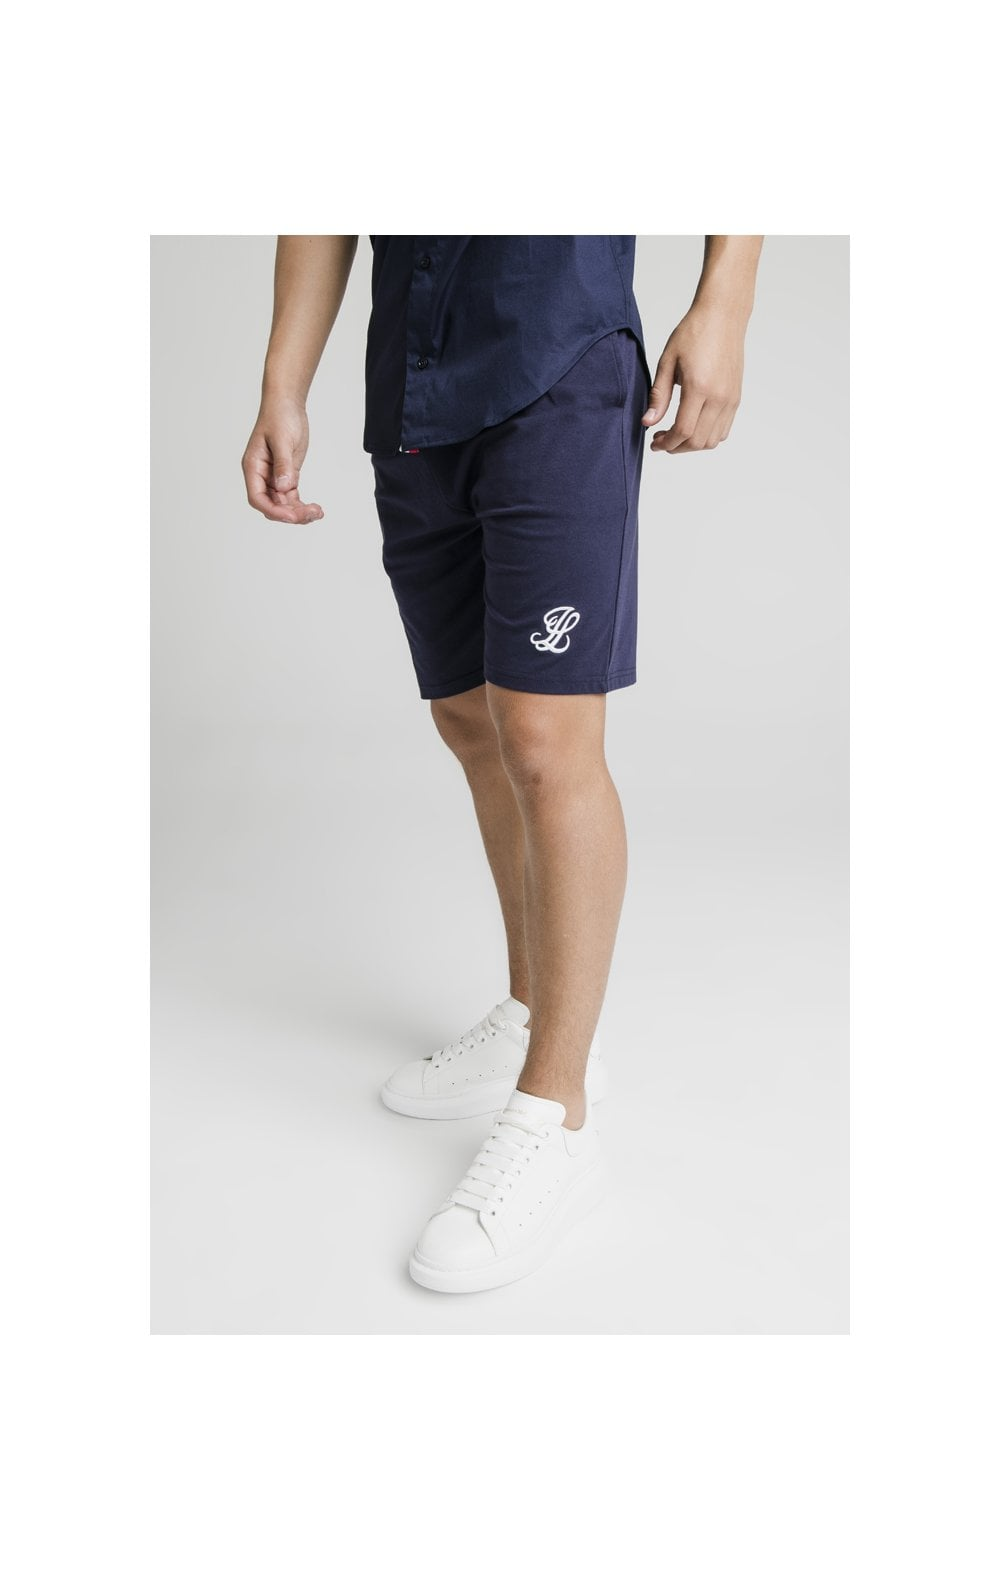 Load image into Gallery viewer, Illusive London Side Tape Jersey Shorts - Navy